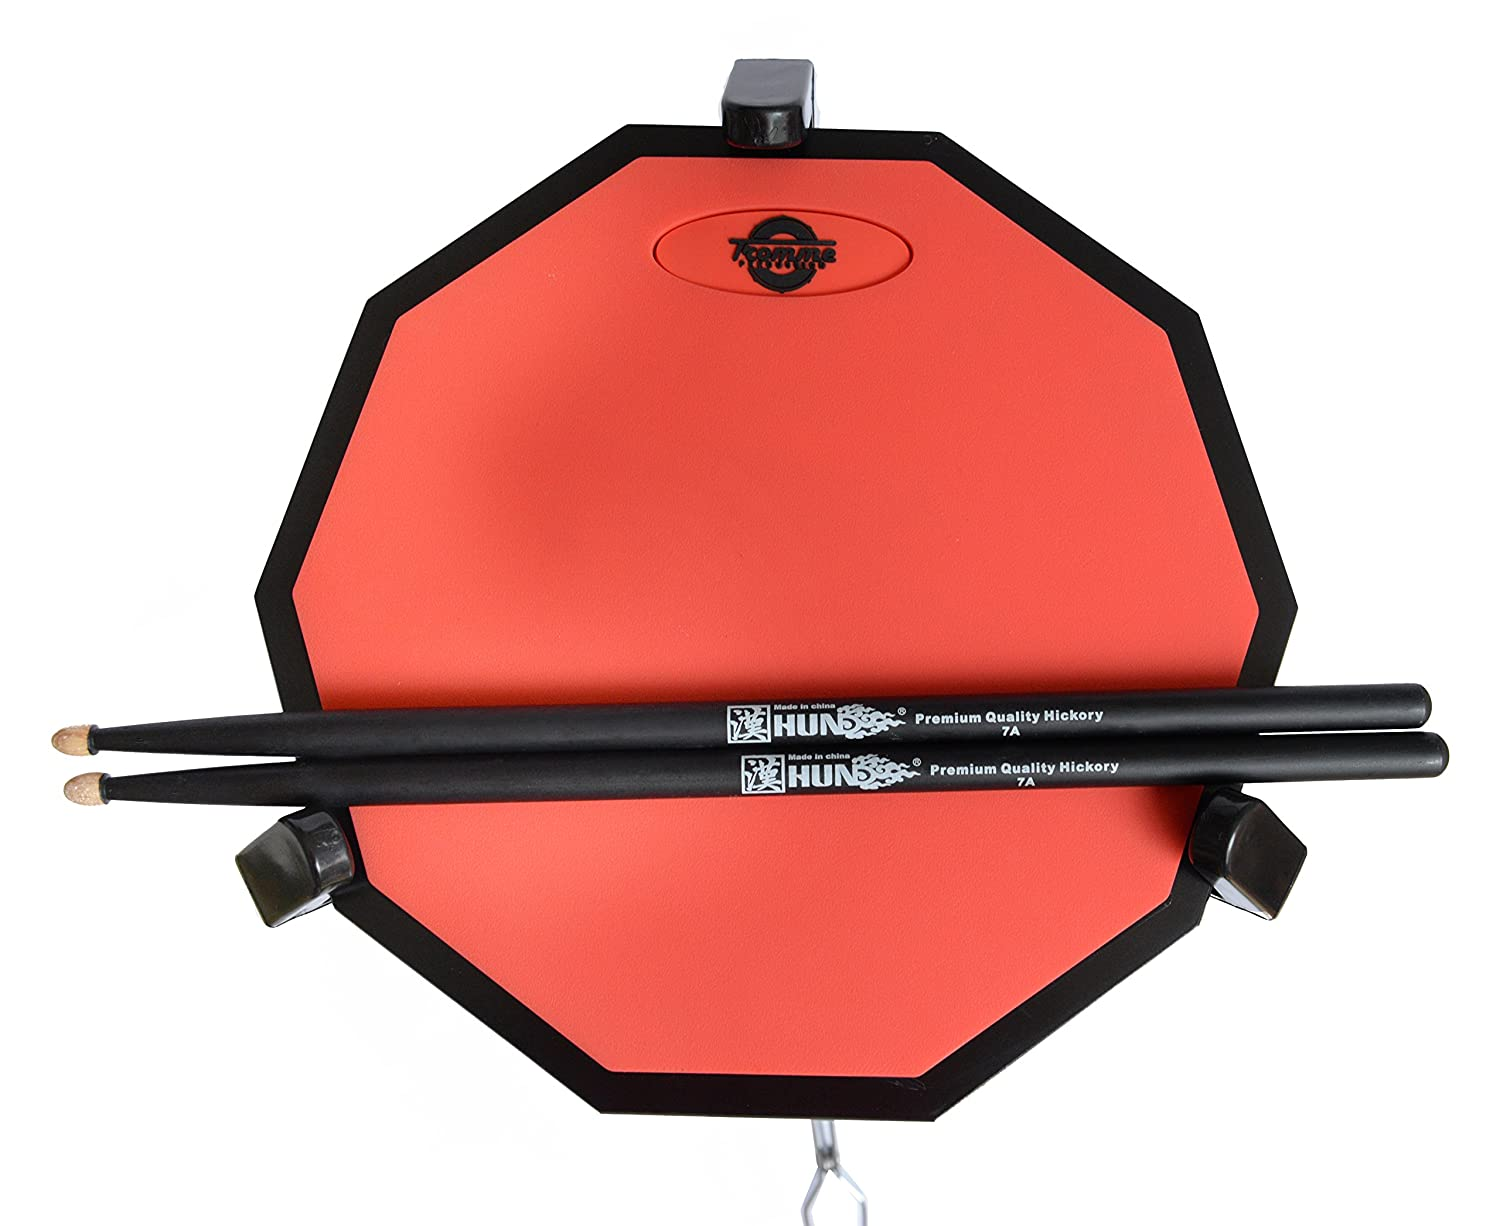 Tromme Drum Practice Pad & Carrying Case - 12 Inches - Silicone - Wooden Base with Real Drum Feel - Practice Quietly - Sticks and Stand NOT INCLUDED (Gray) 4334221597